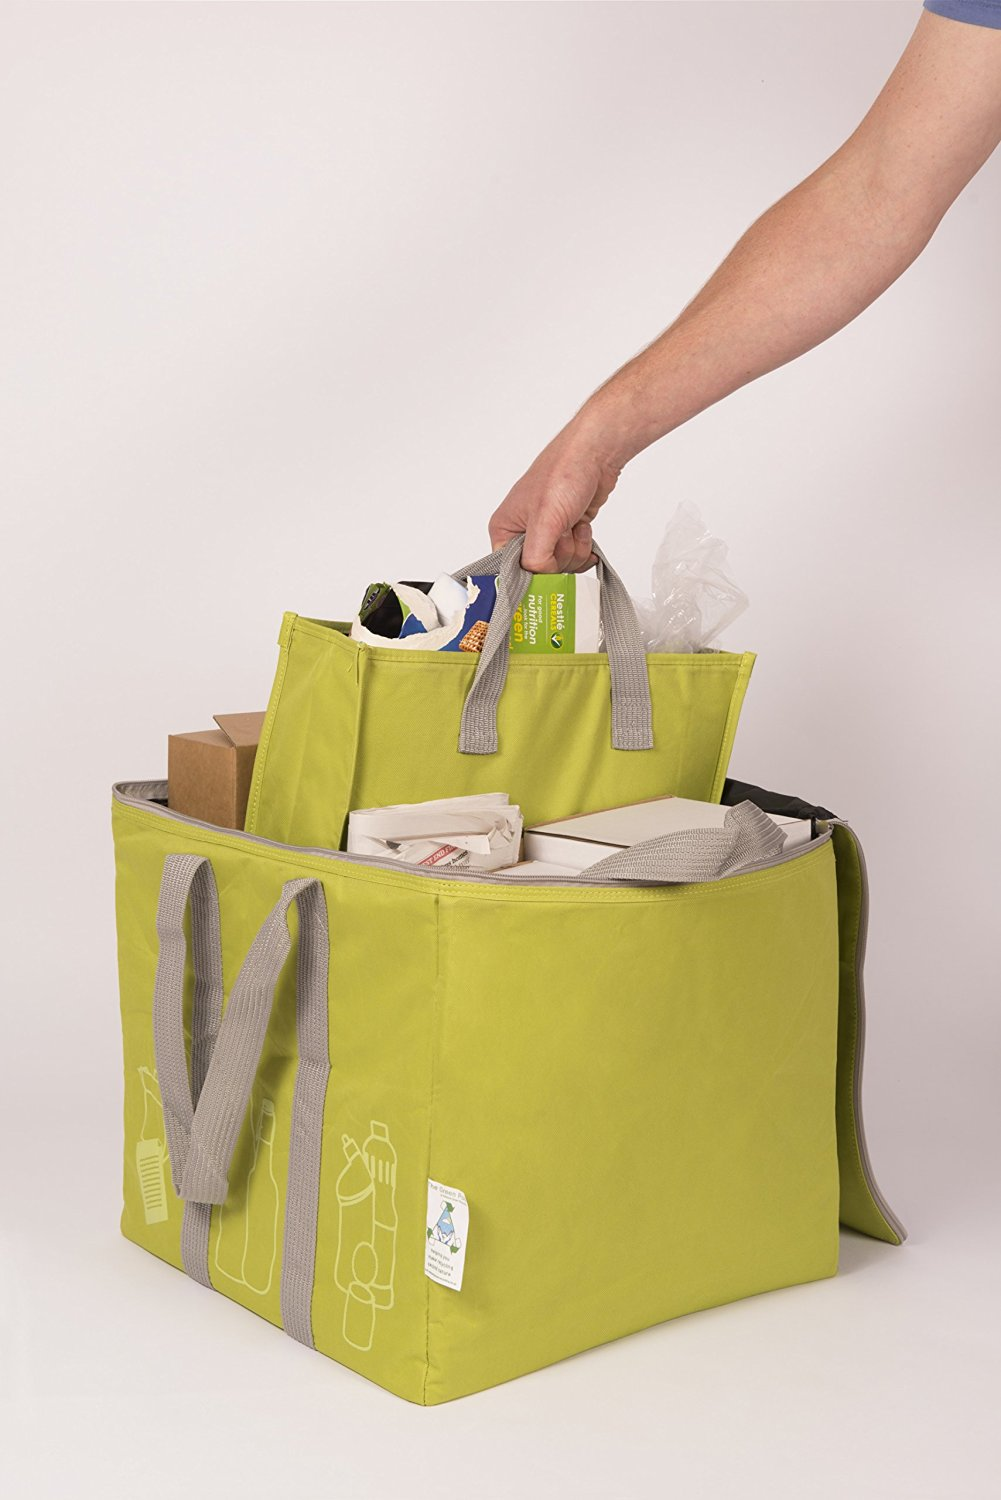 The Green Pod Recycling Bag - with removable bags inside (Green, 80 Liters)